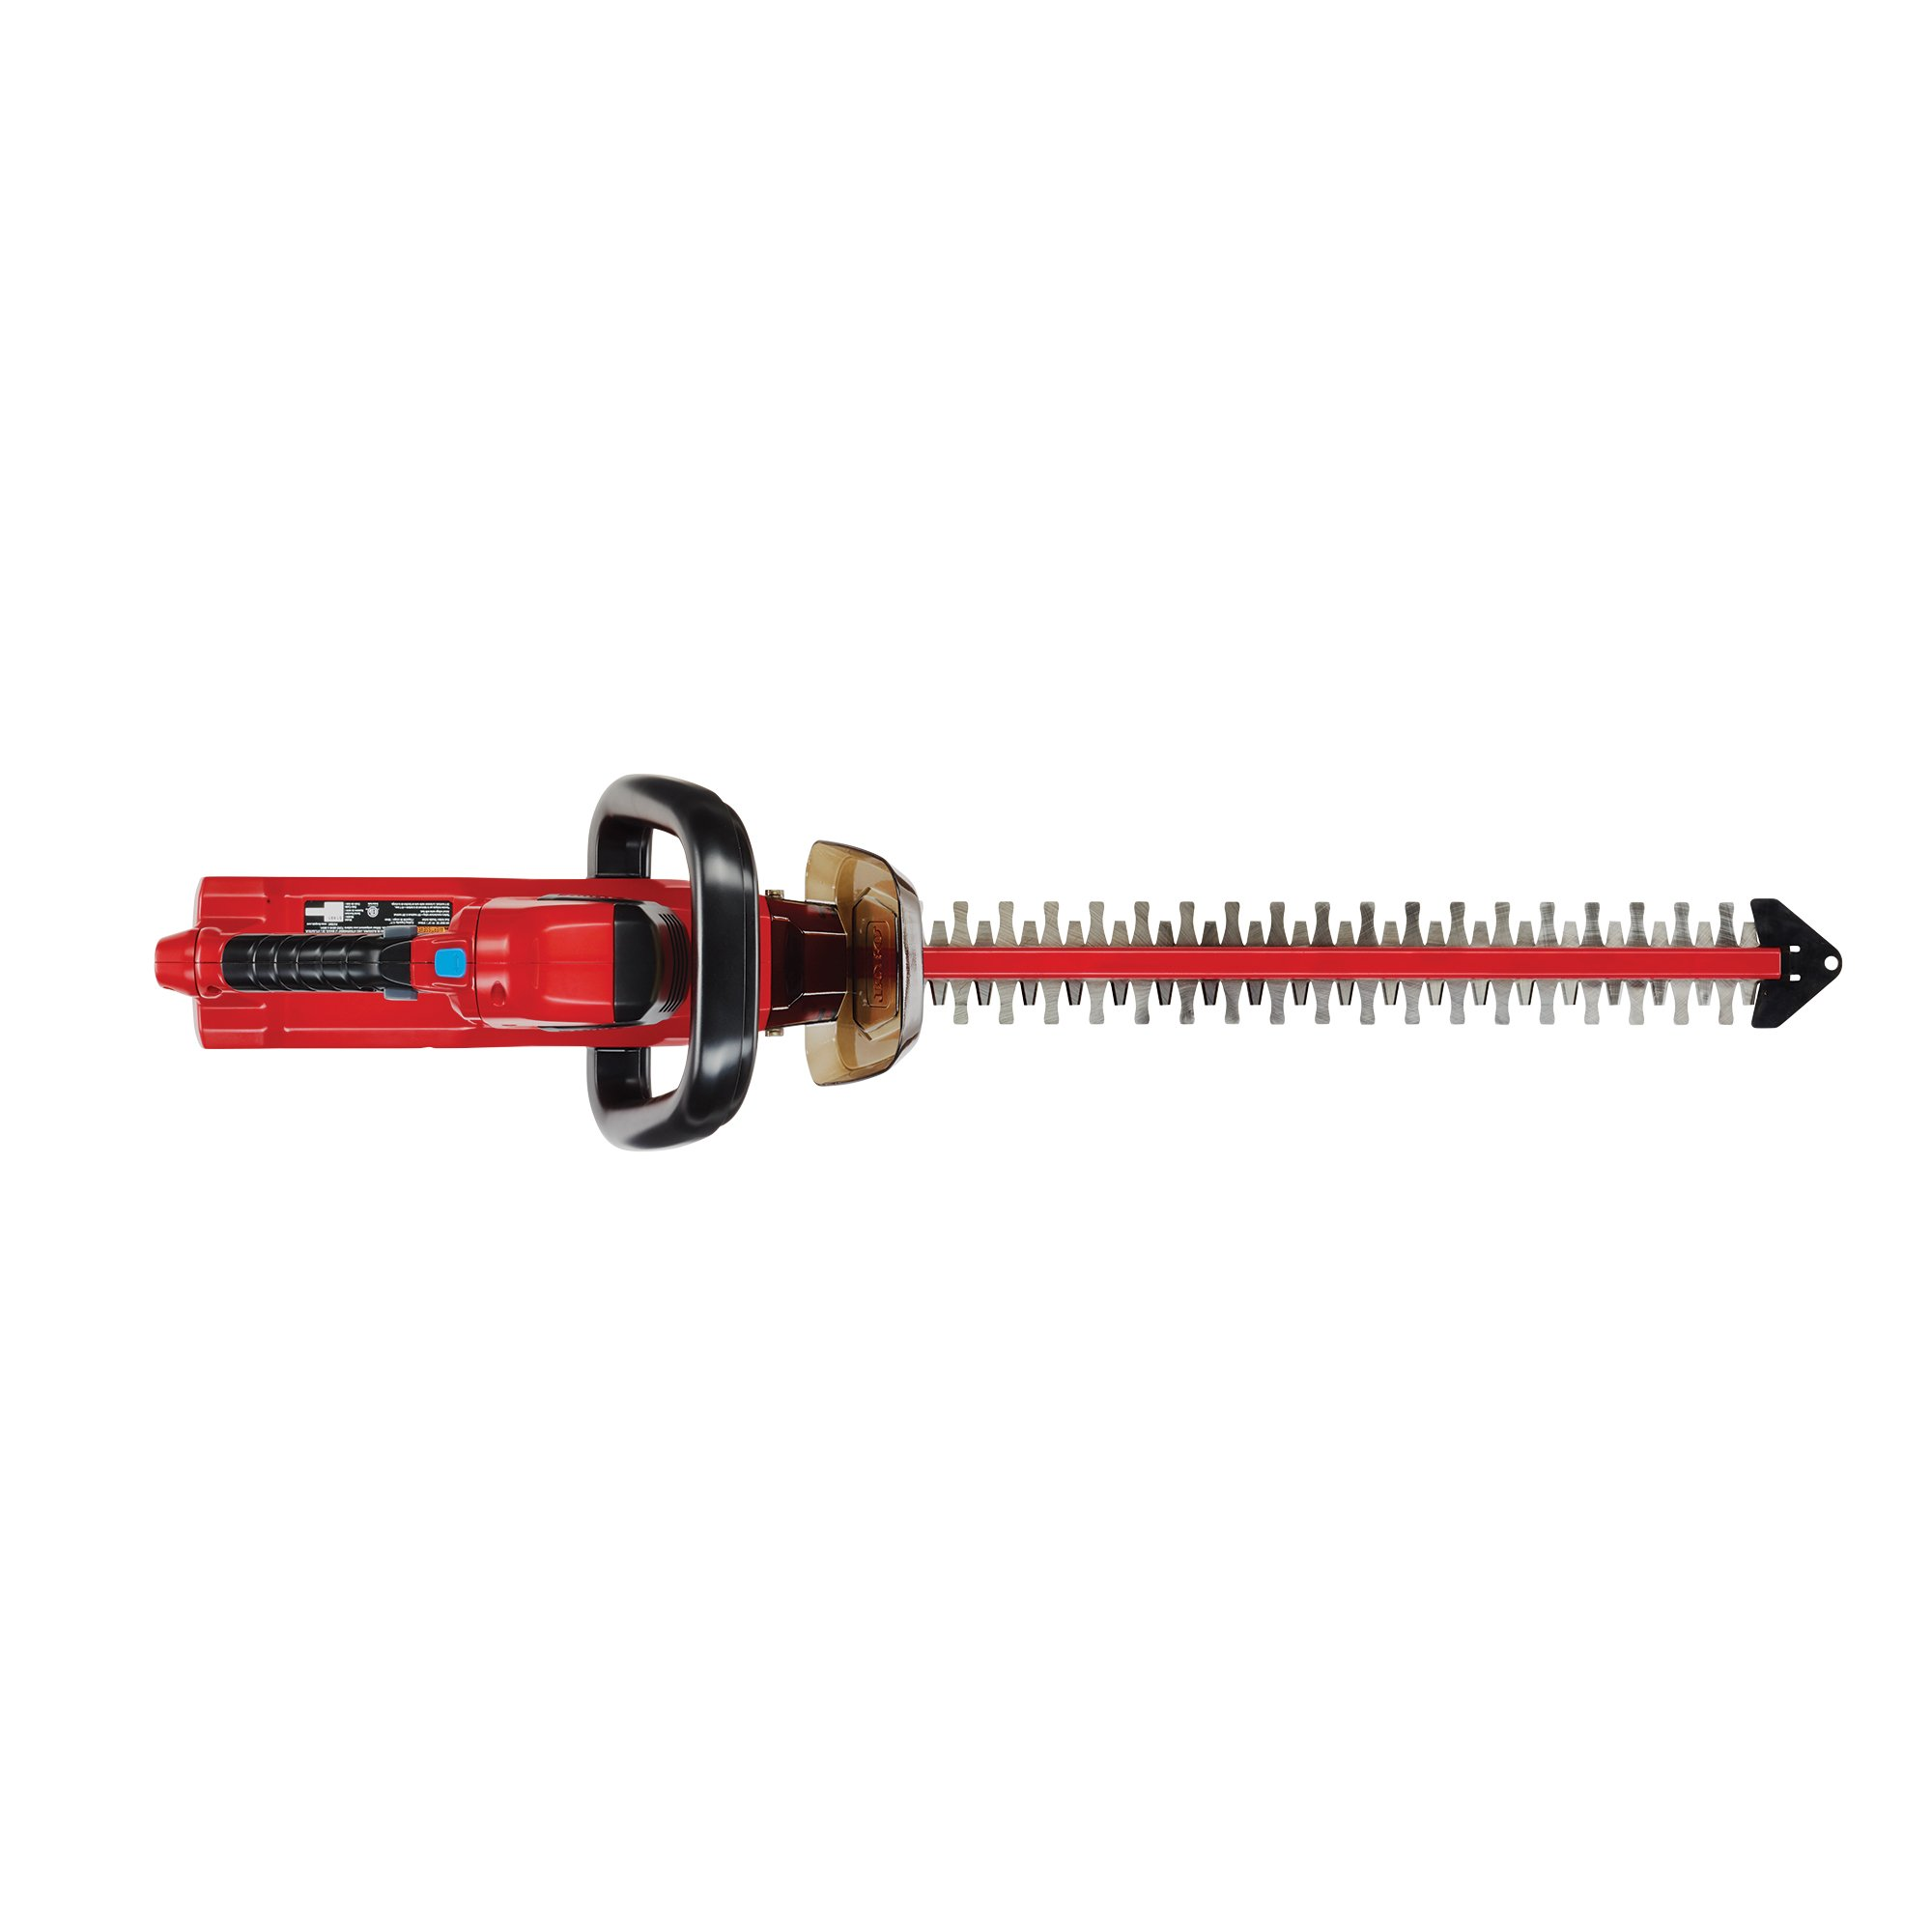 "Toro PowerPlex 51491T 40V MAX Lithium Ion 24"" Cordless Hedge Trimmer, without Battery & Charger"